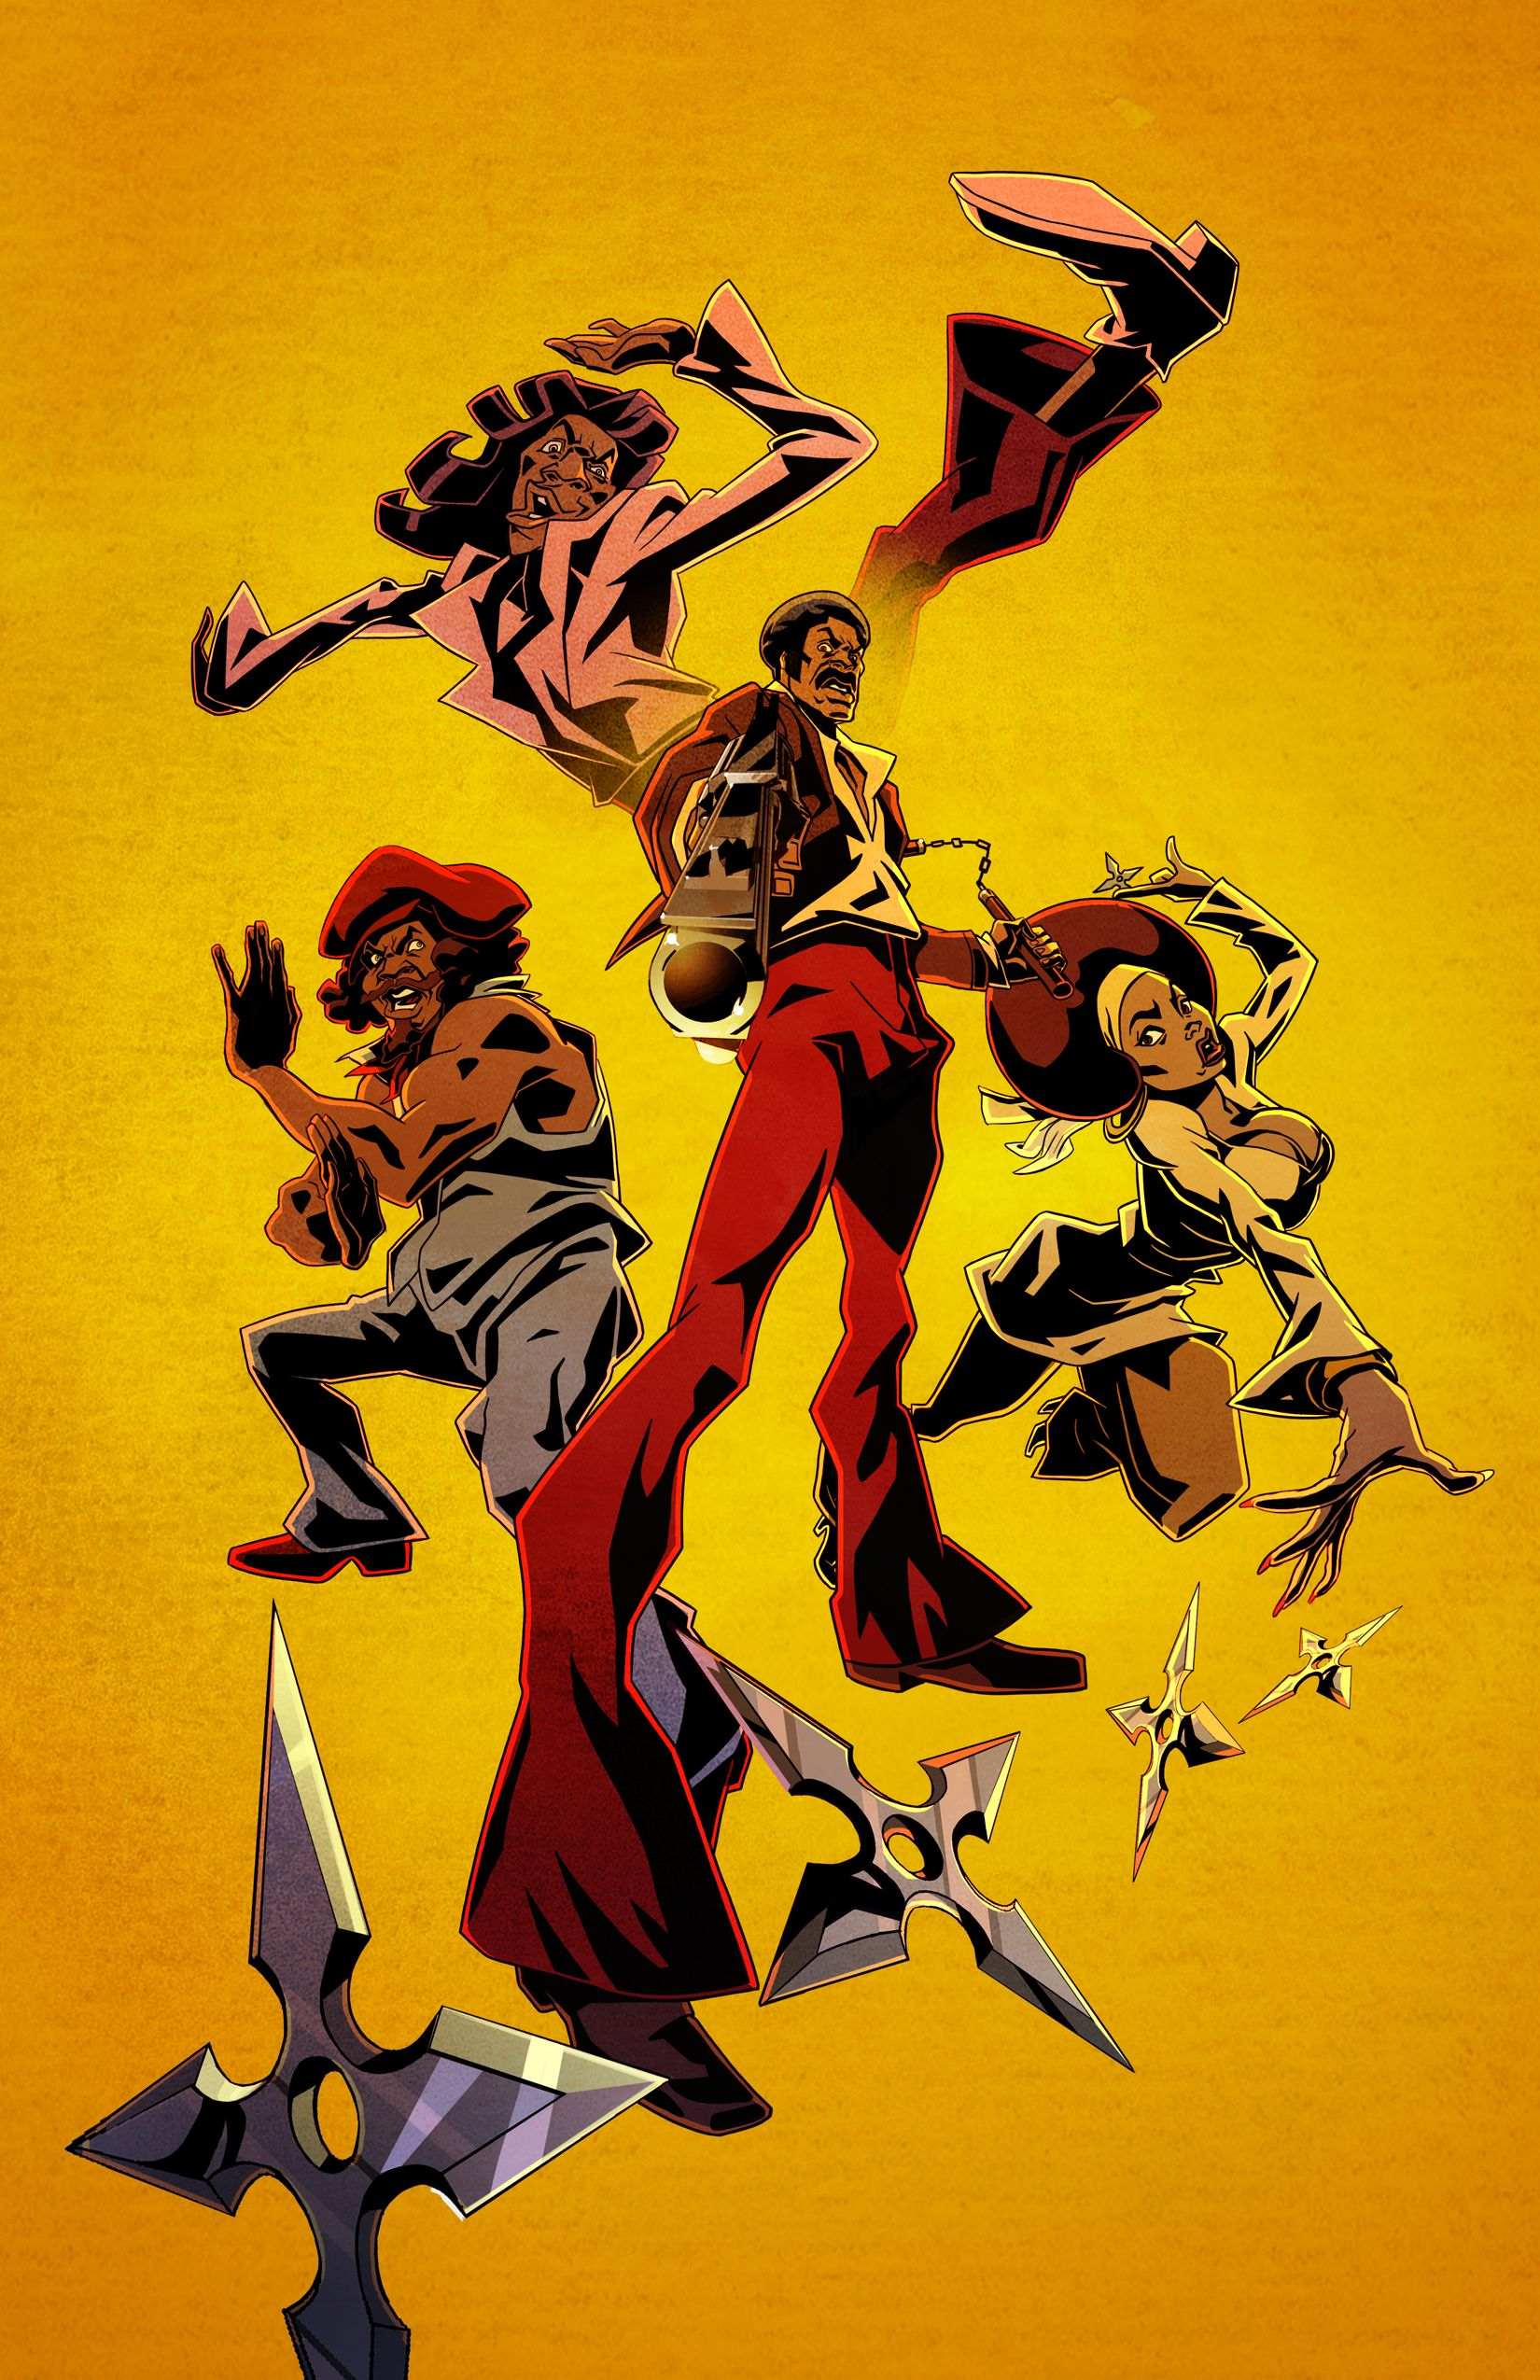 Black Dynamite Animated Series Trailer Posters And